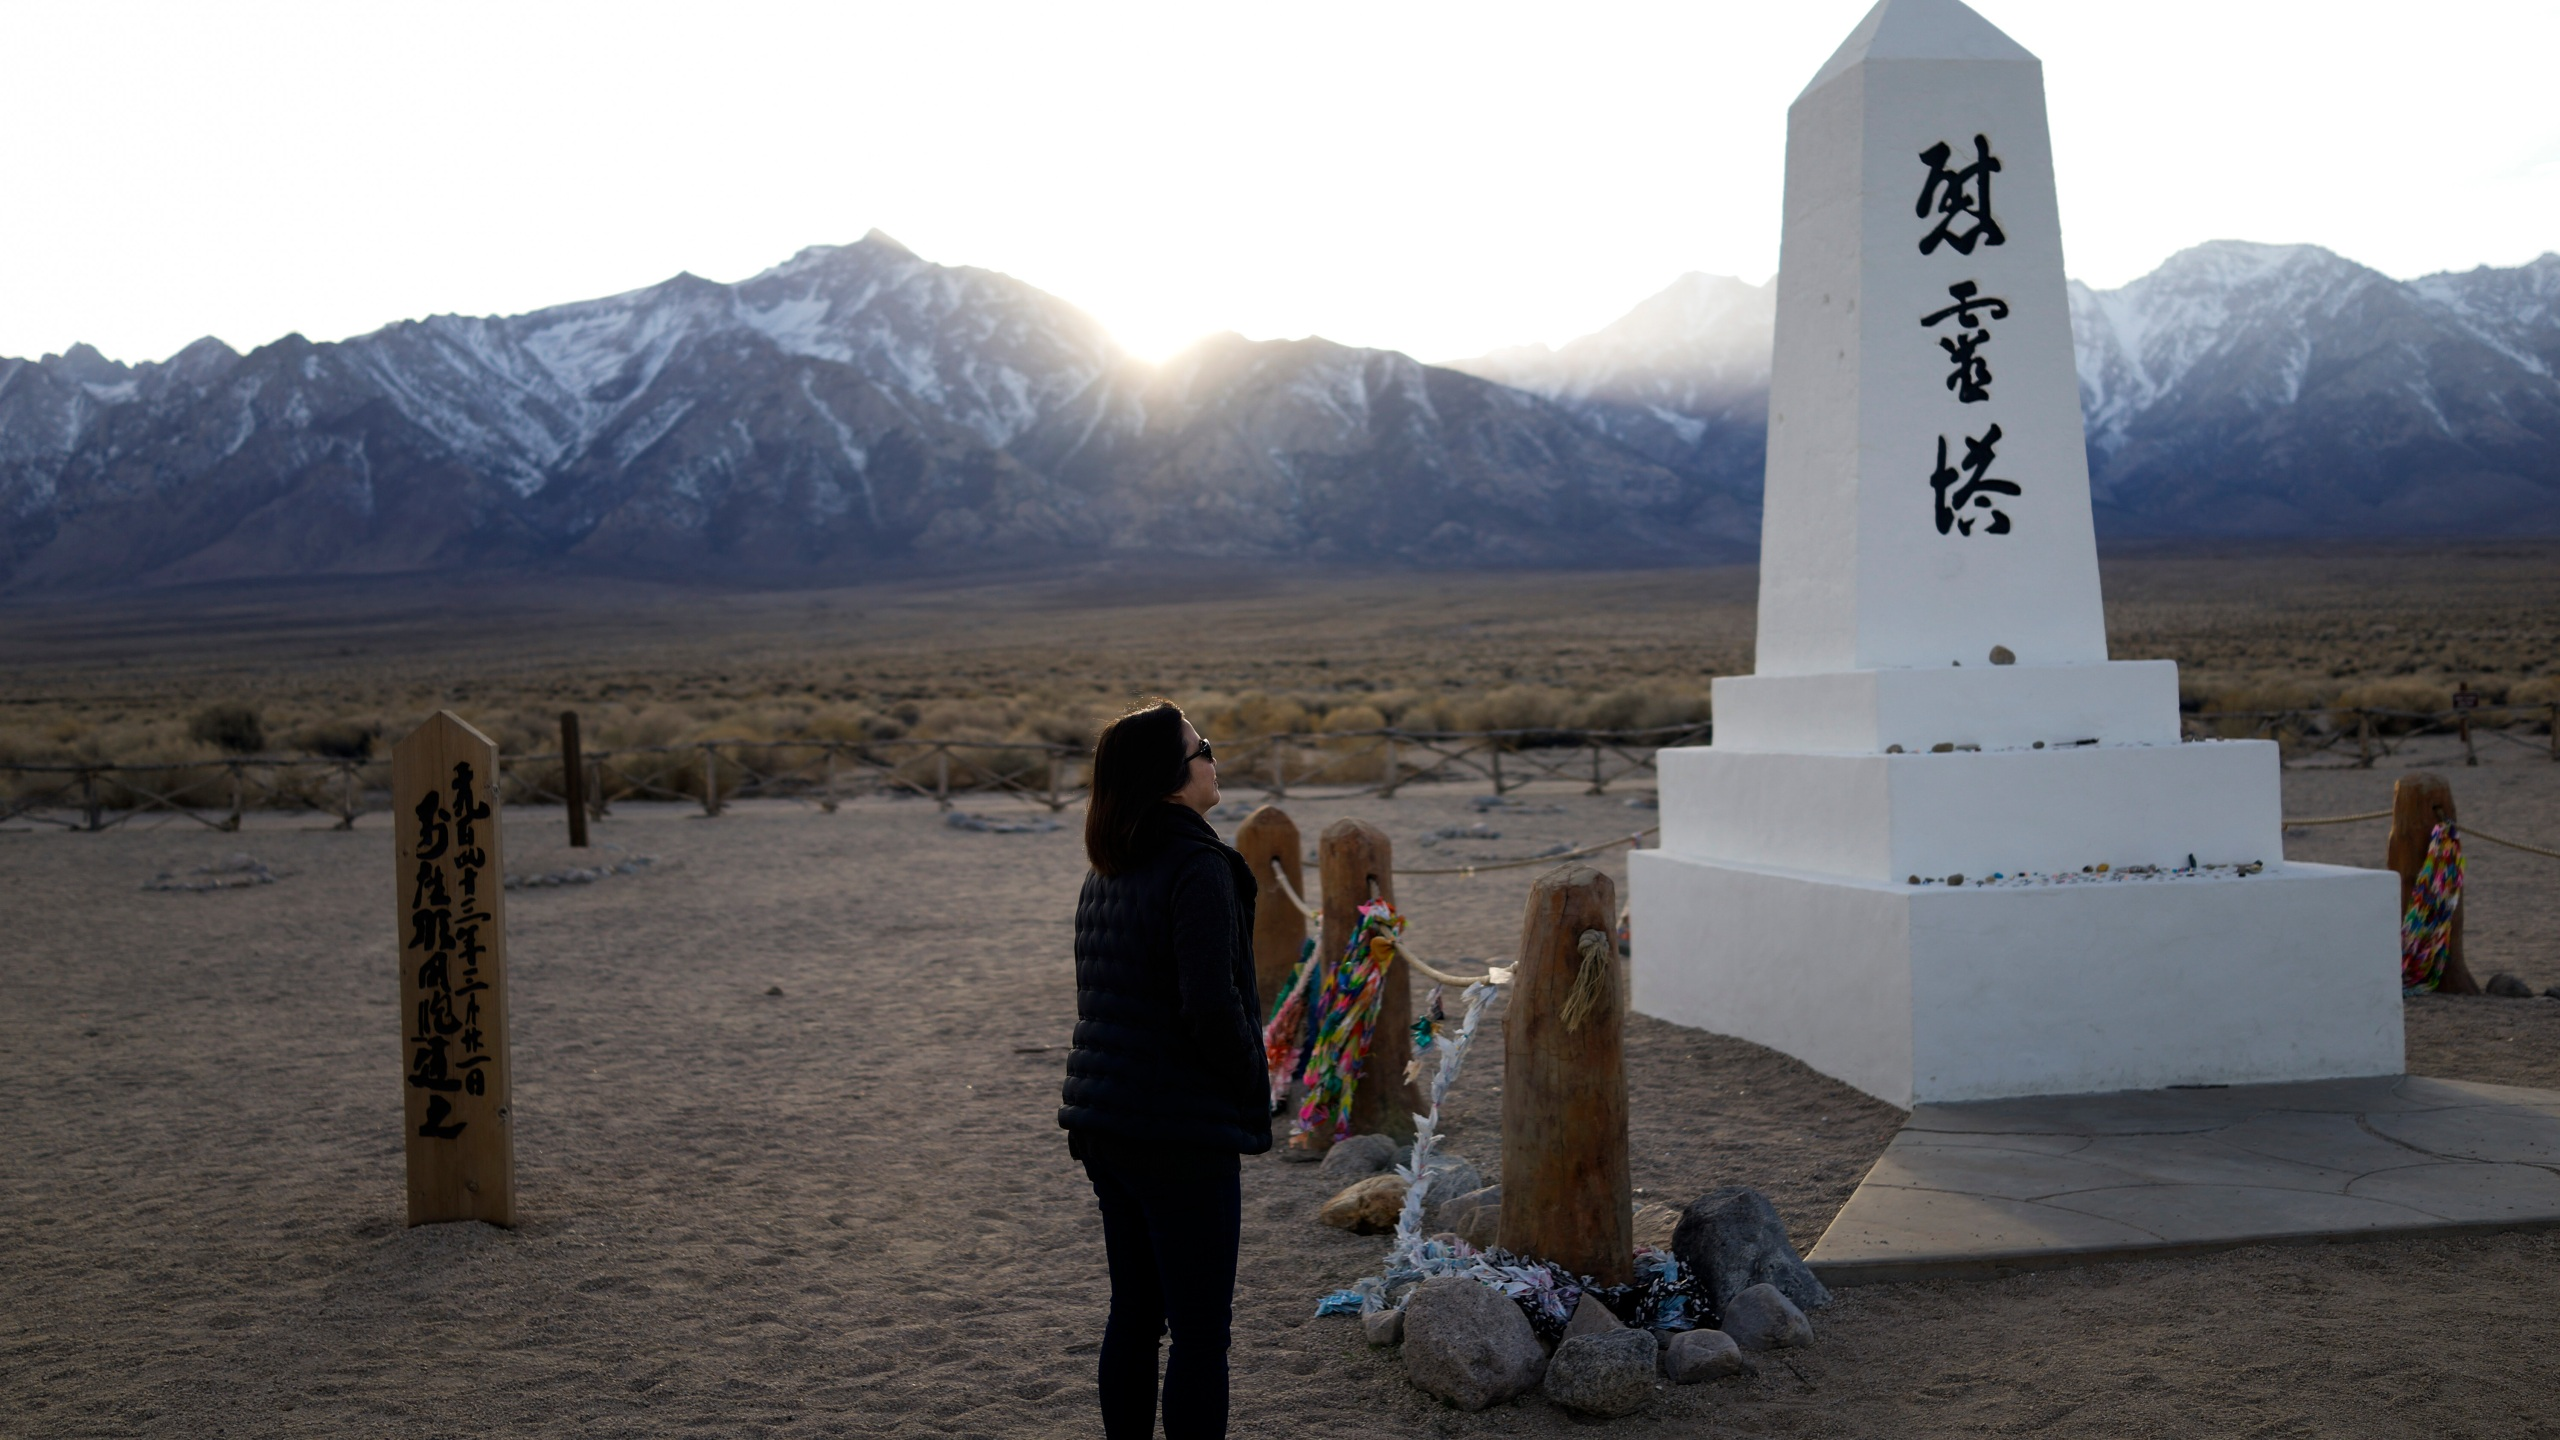 Lori Matsumura visits the cemetery at the Manzanar National Historic Site near Independence, Calif., on Feb. 17, 2020. (Brian Melley / Associated Press)